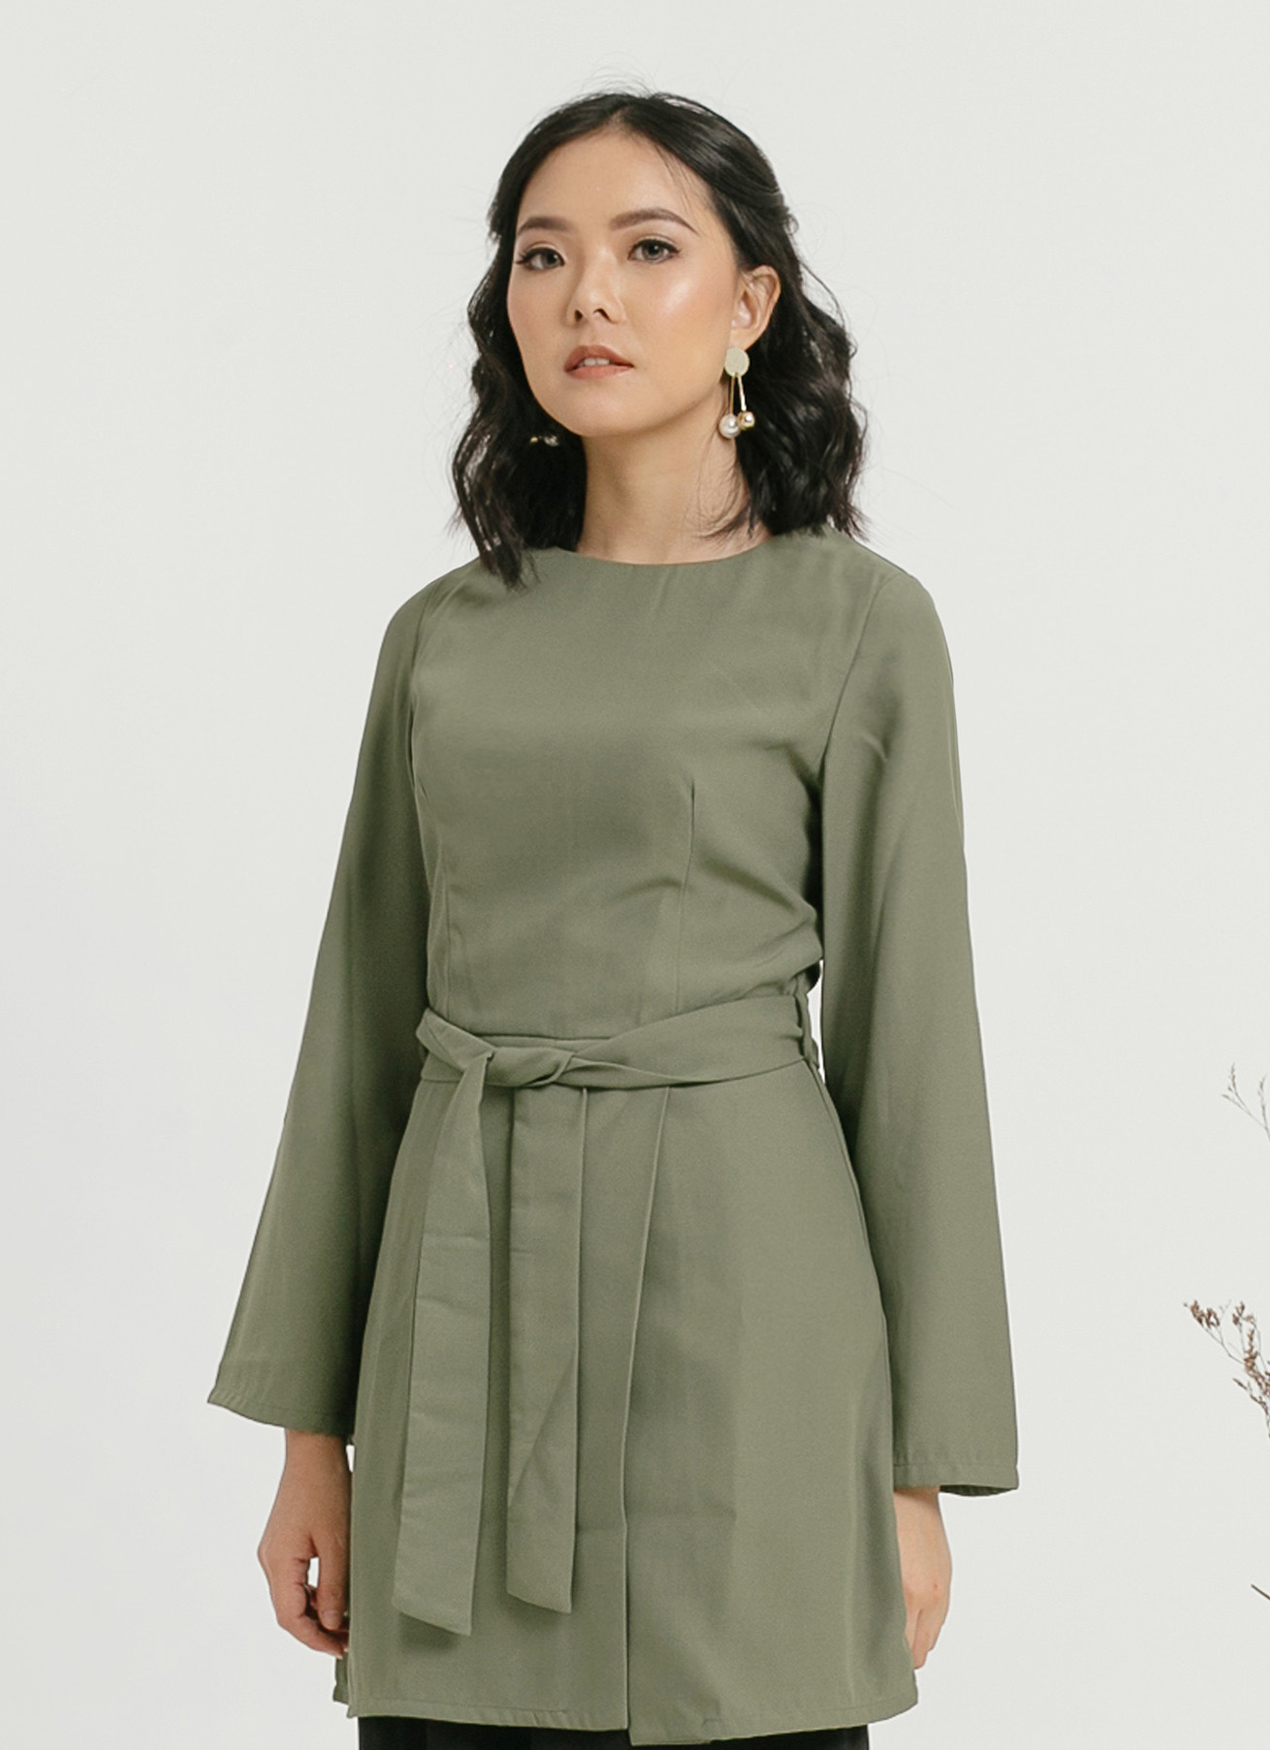 CLOTH INC Palma Tied Blouse - Pine Green